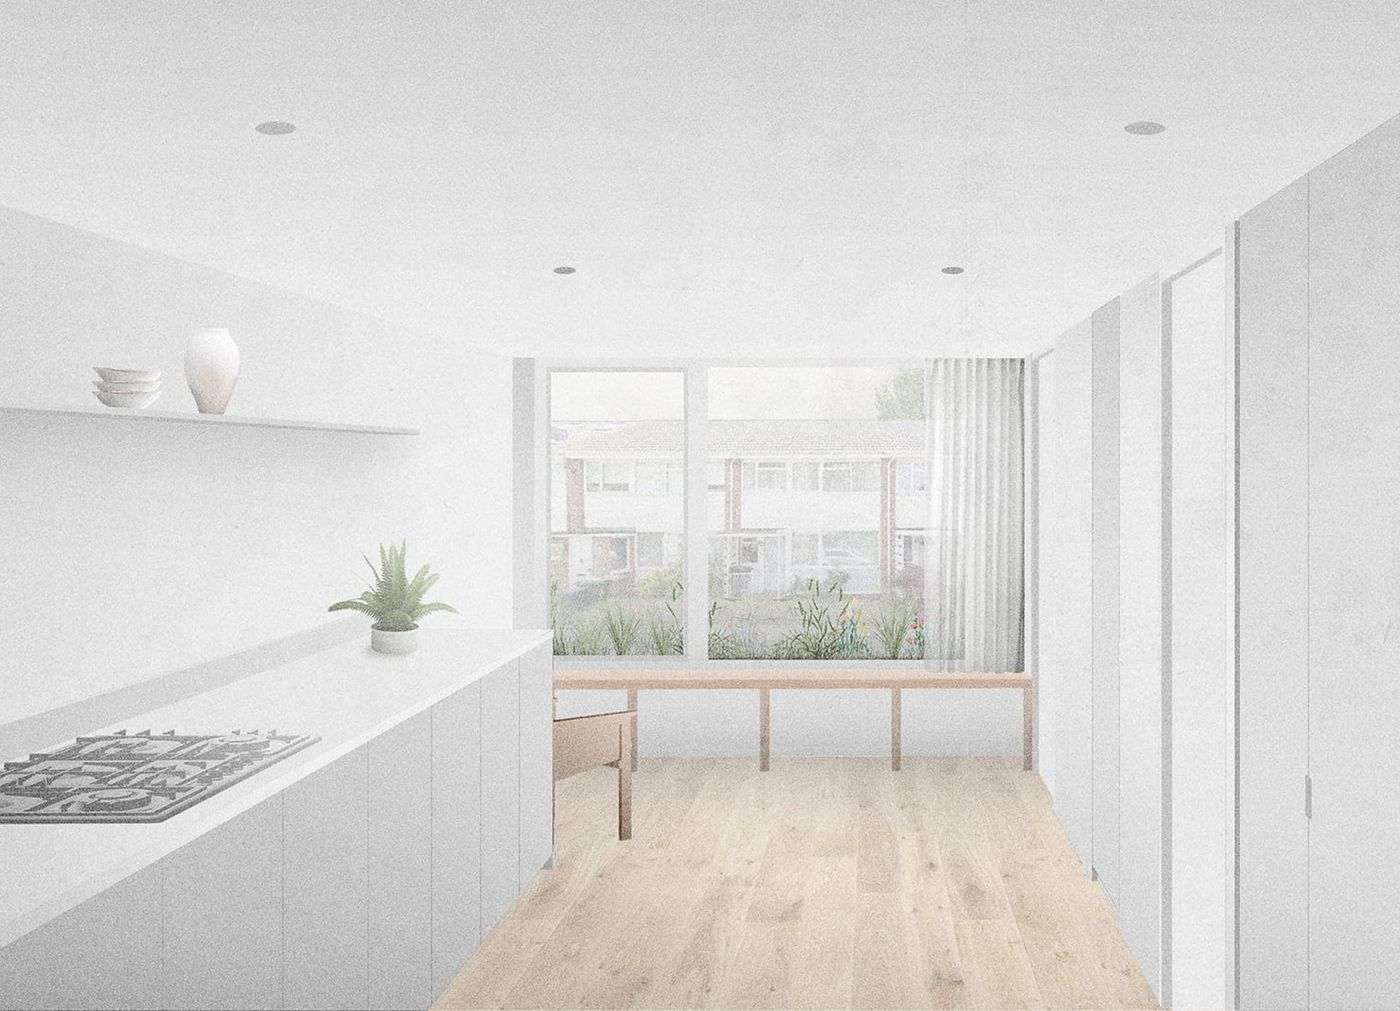 Interior view of the light grey kitchen looking out towards the window seat and external planter within From Works refurbishment and extension in Blackheath, London.